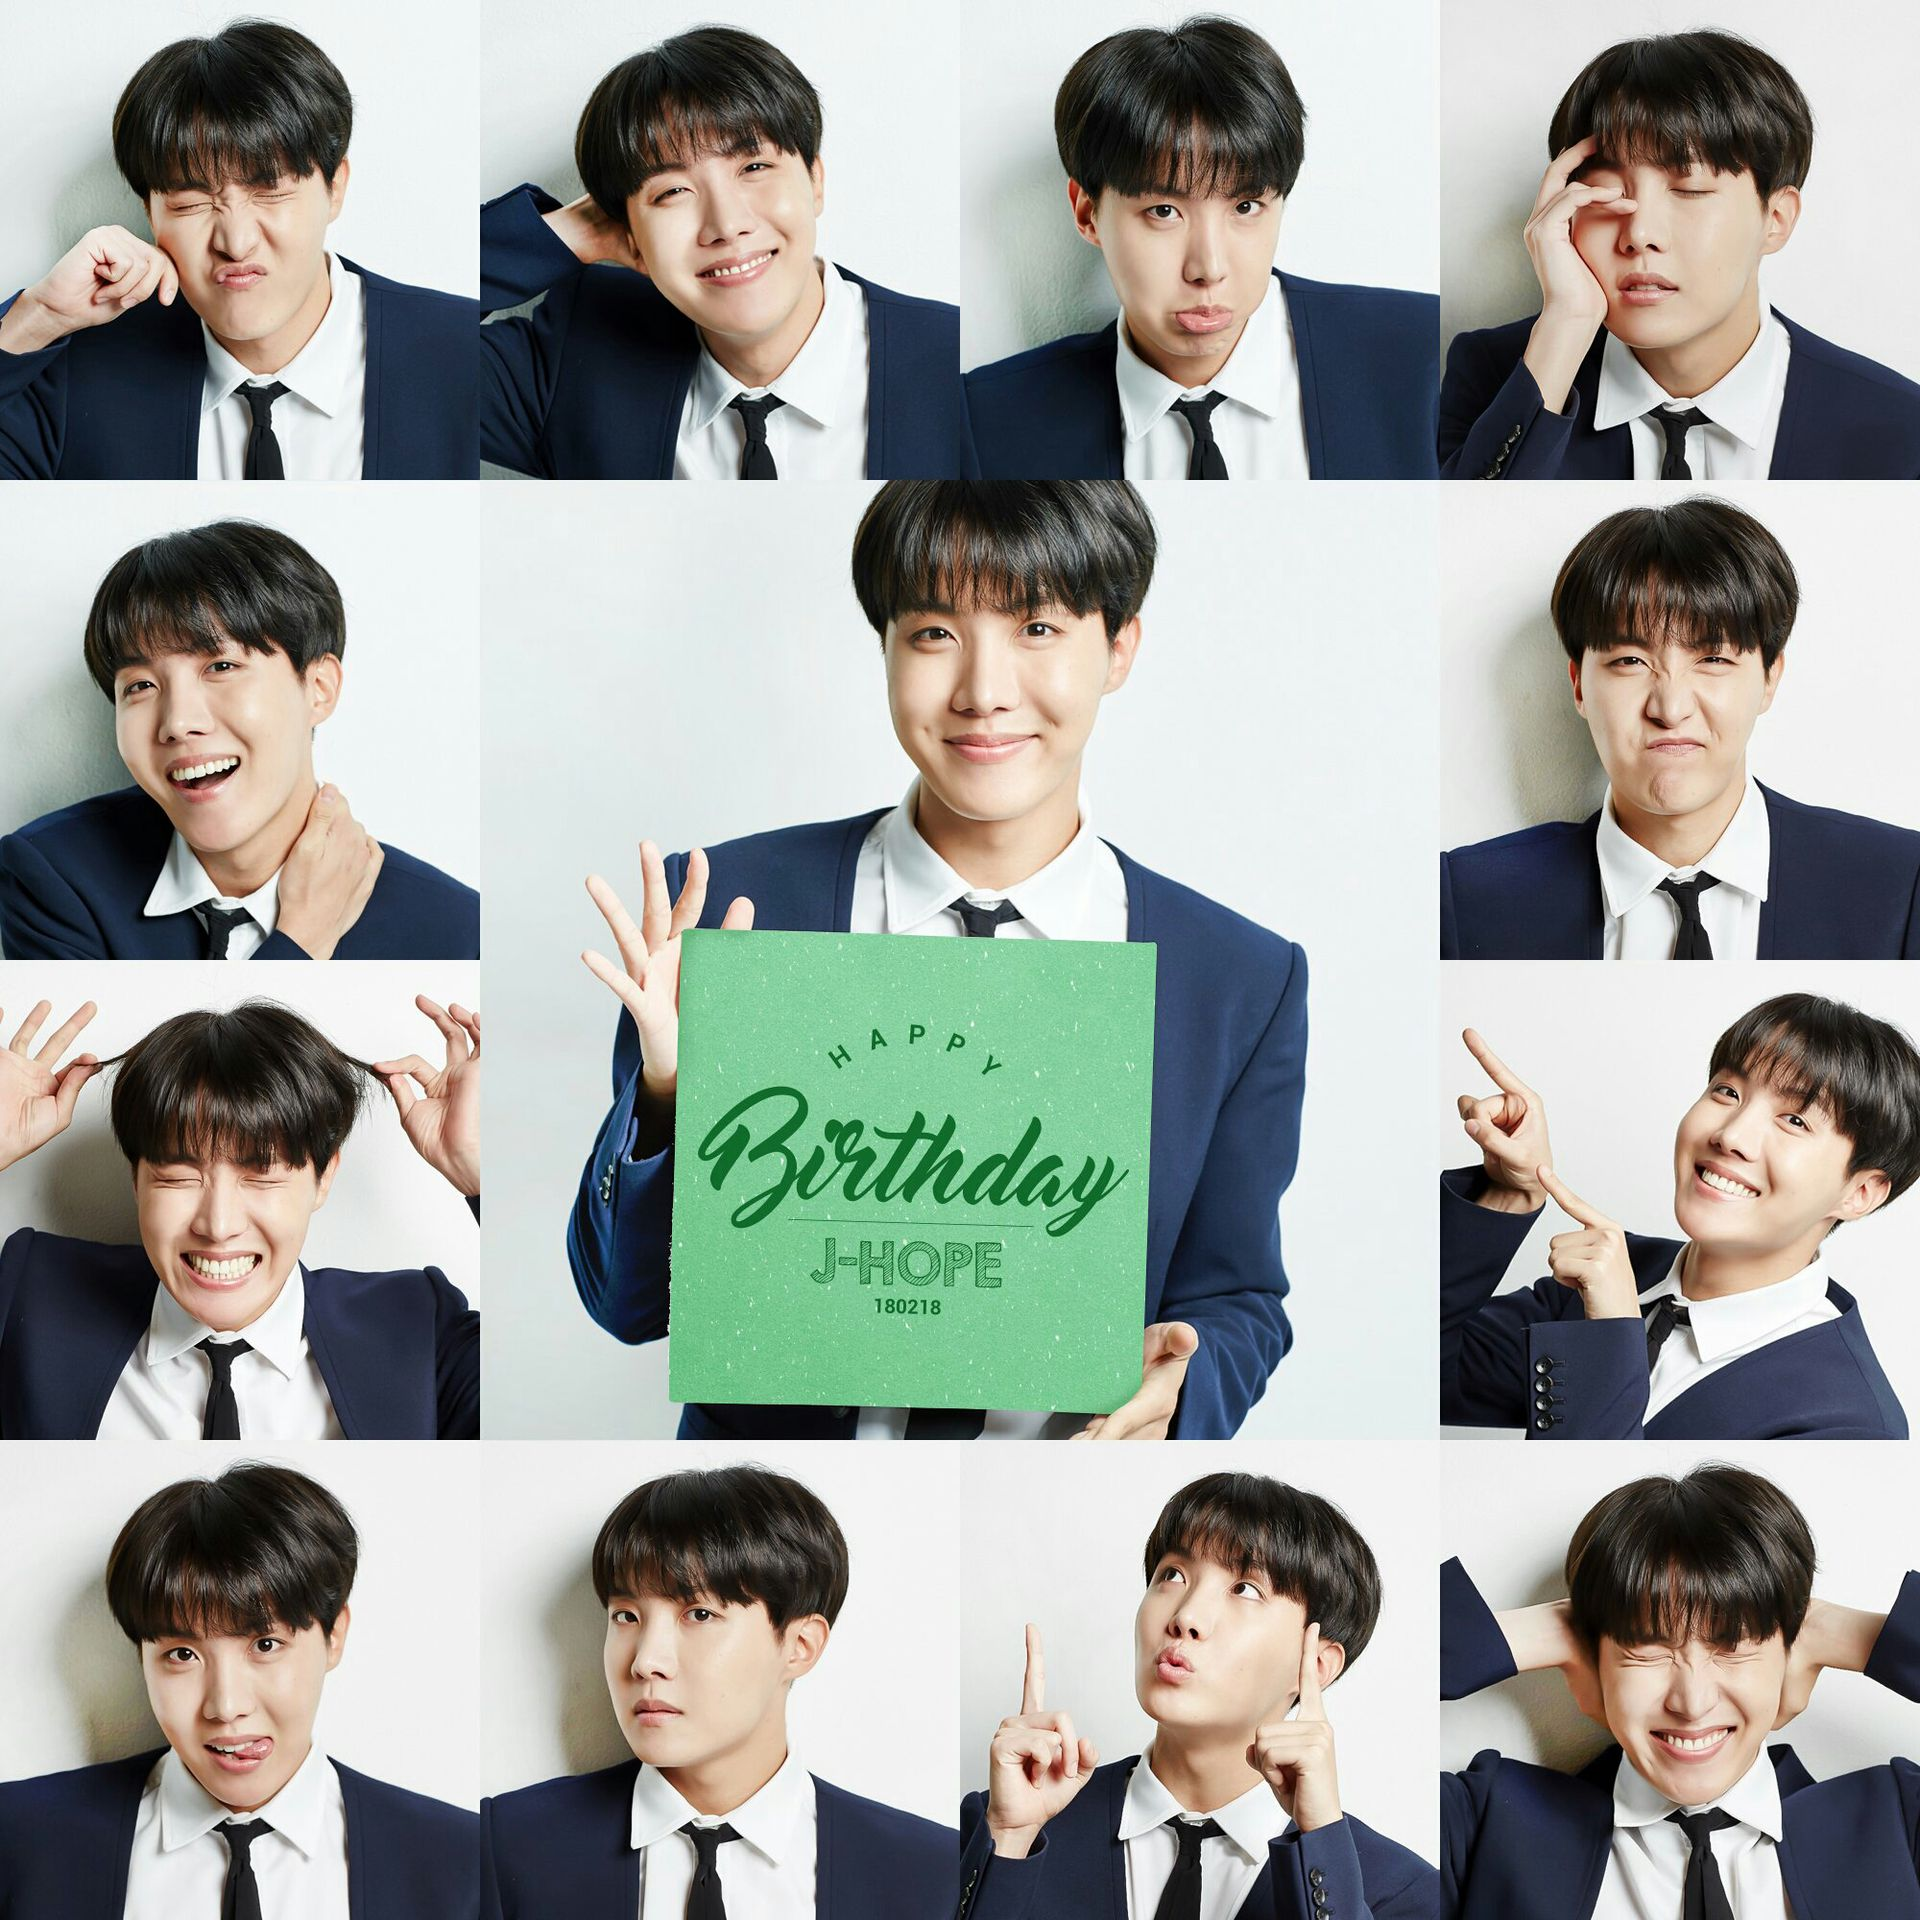 Agent 007 On Hold Jhope S Birthday Edition Part 2 Page 3 Wattpad